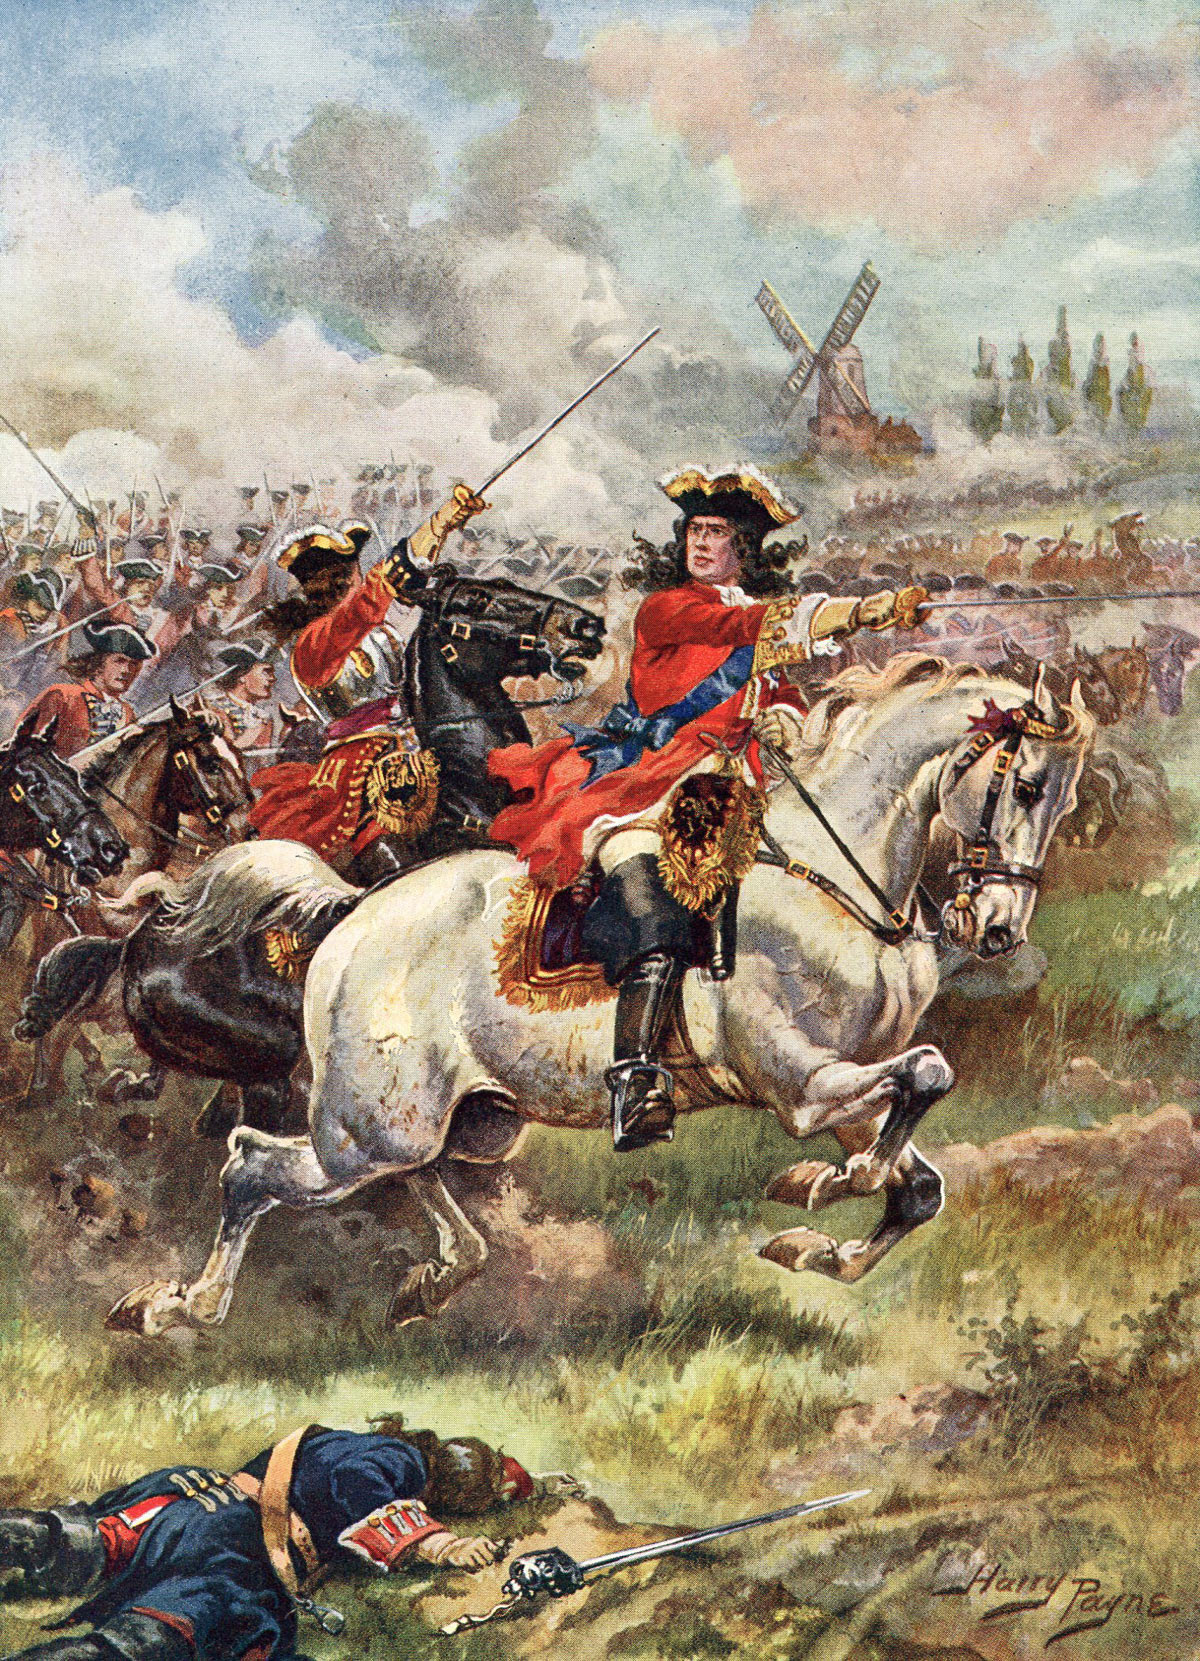 The Duke of Marlborough leads the attack at the Battle of Blenheim 2nd August 1704 in the War of the Spanish Succession: picture by Harry Payne